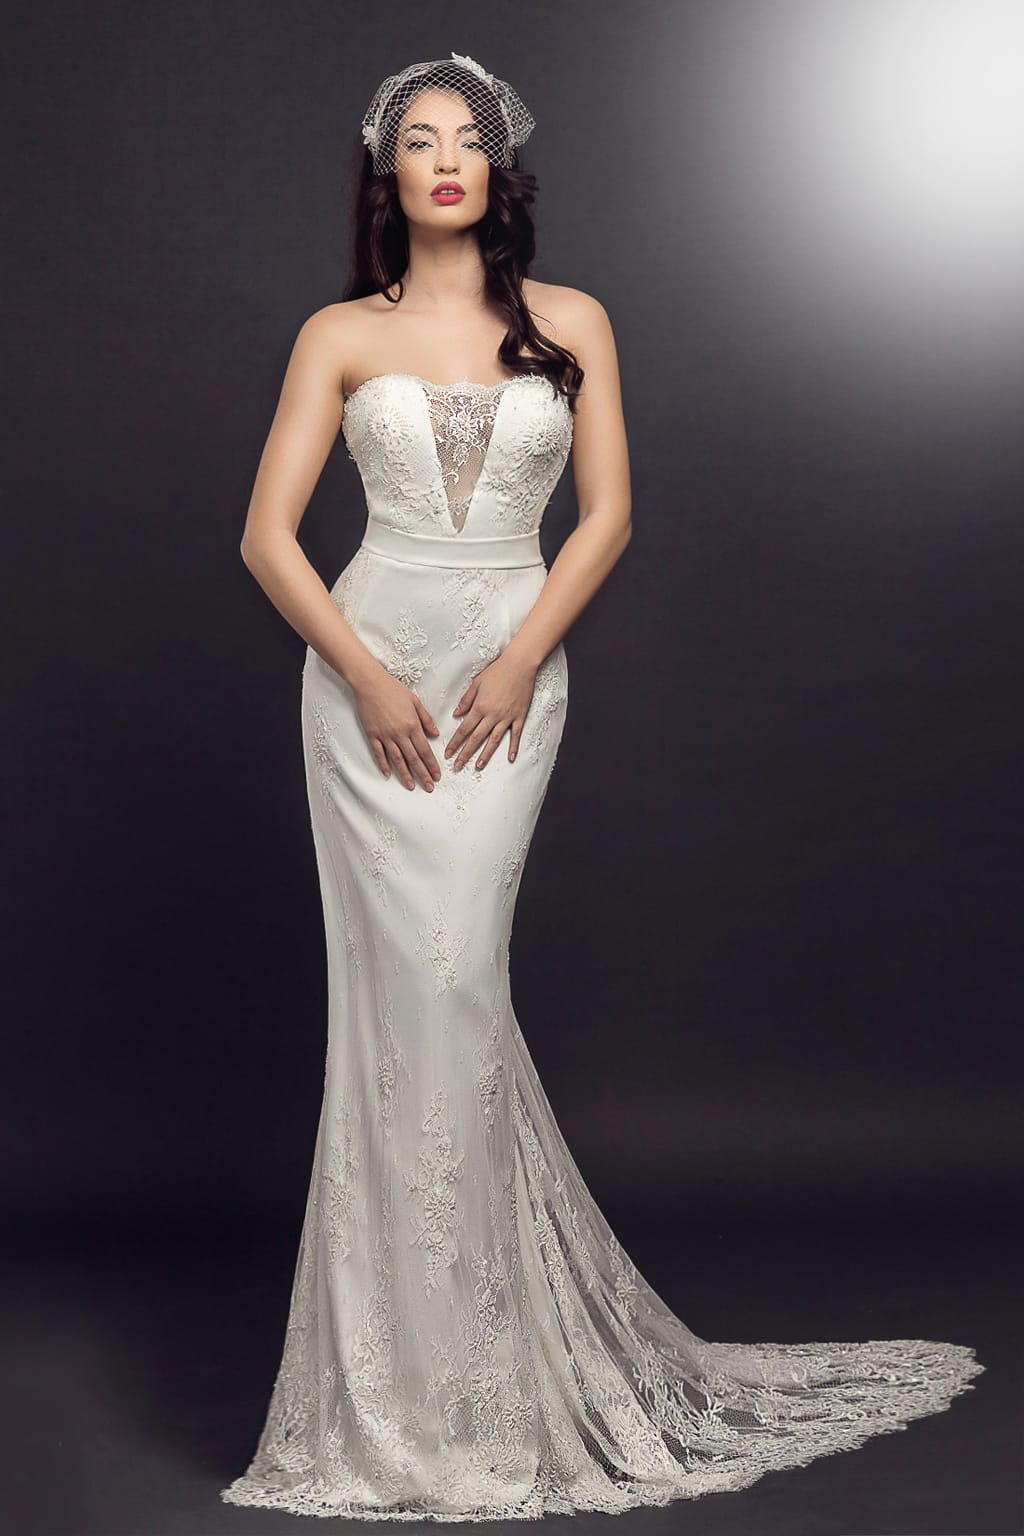 Persis Model - Colectia Dreams - Adora Sposa